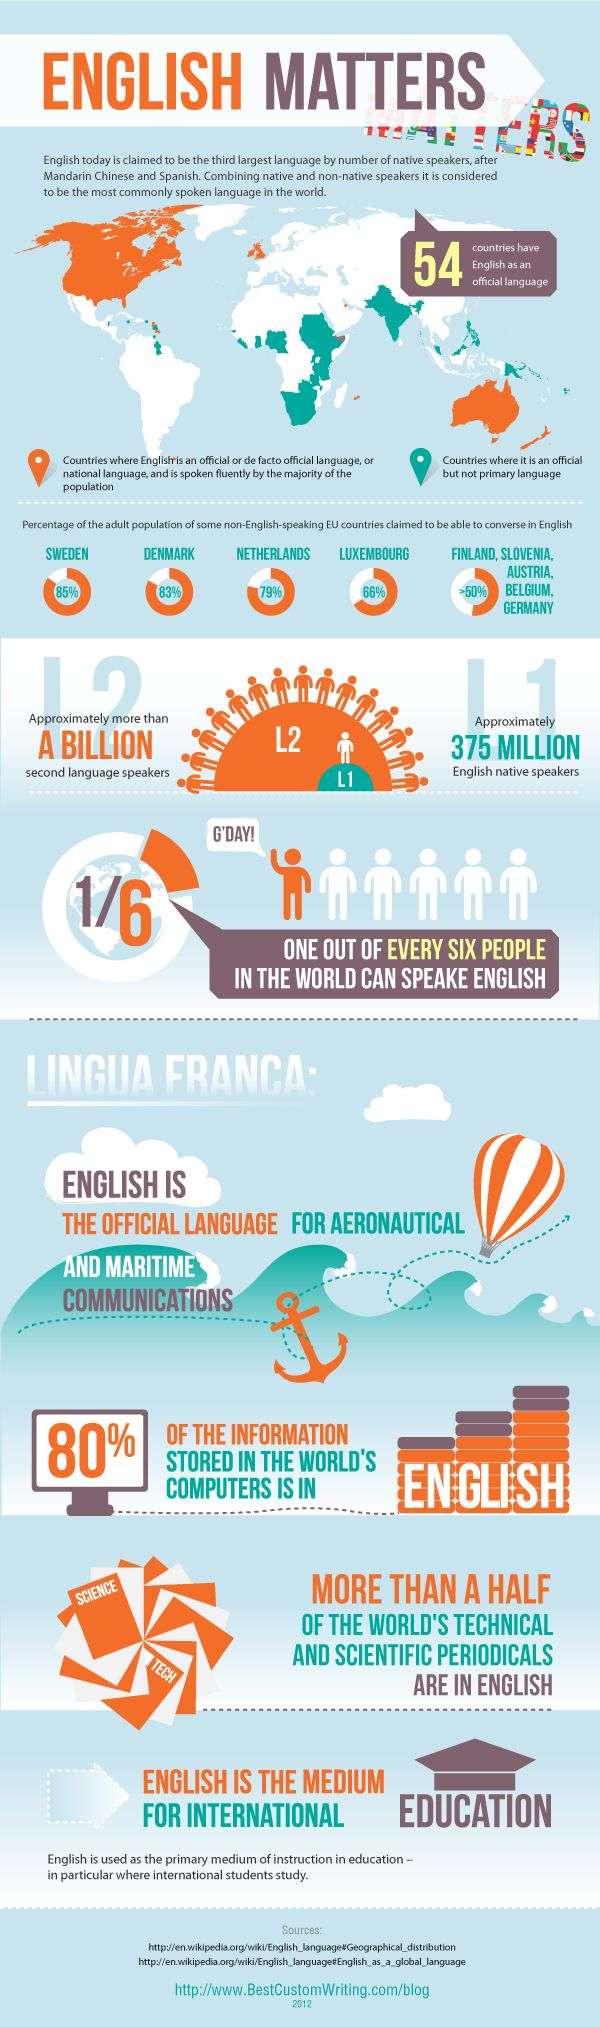 English language facts & how it's being used around the world. And it's a common language on the internet!